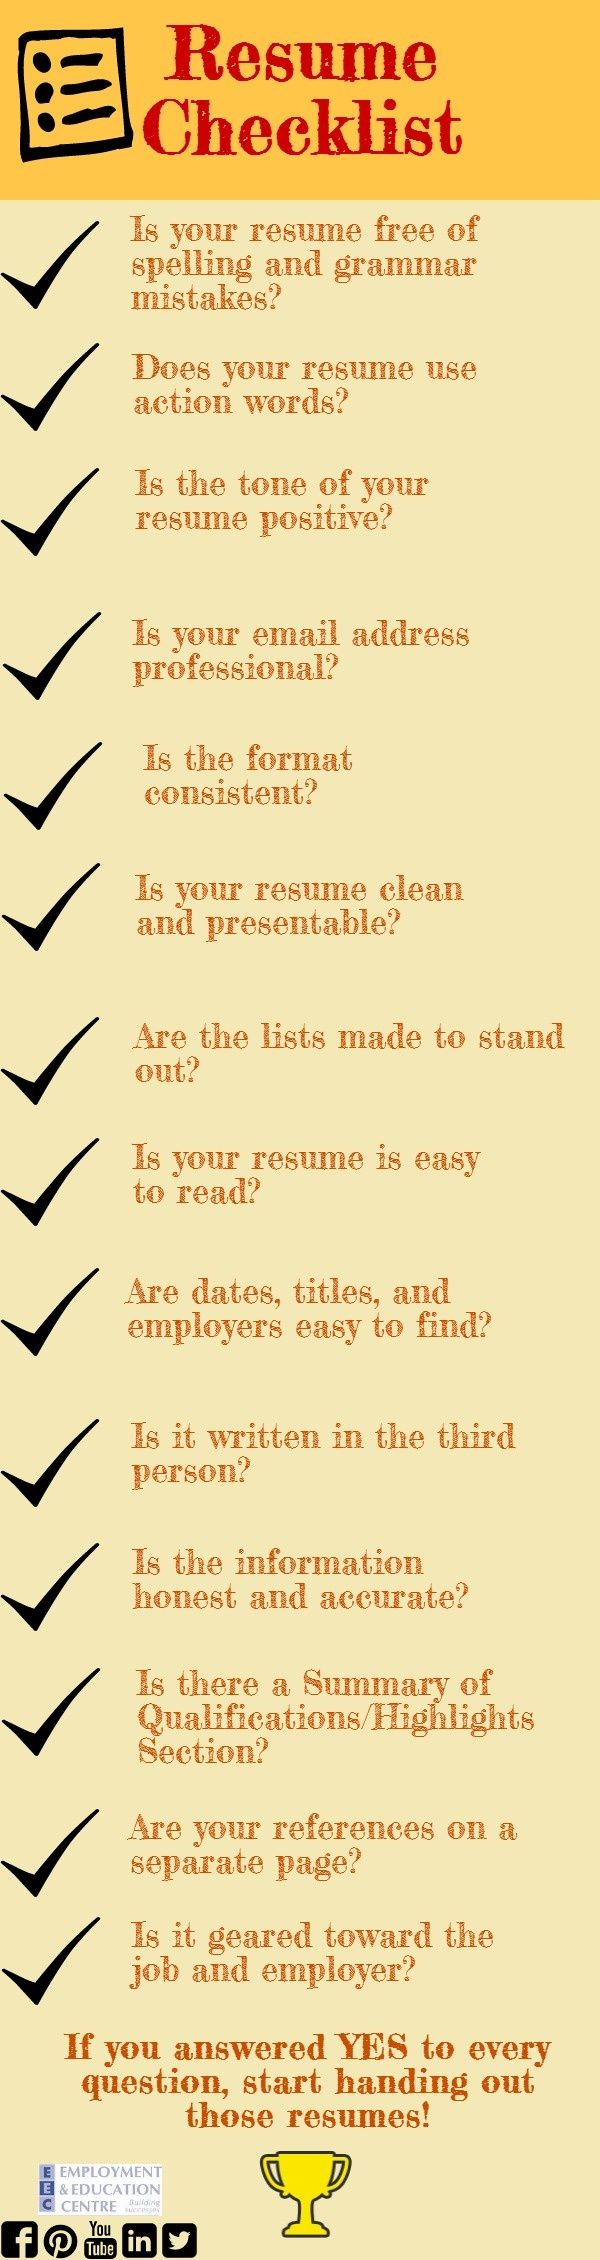 17 best images about resume tips resume tips check out this list before you hand out your resume resumetips jobsearchtips